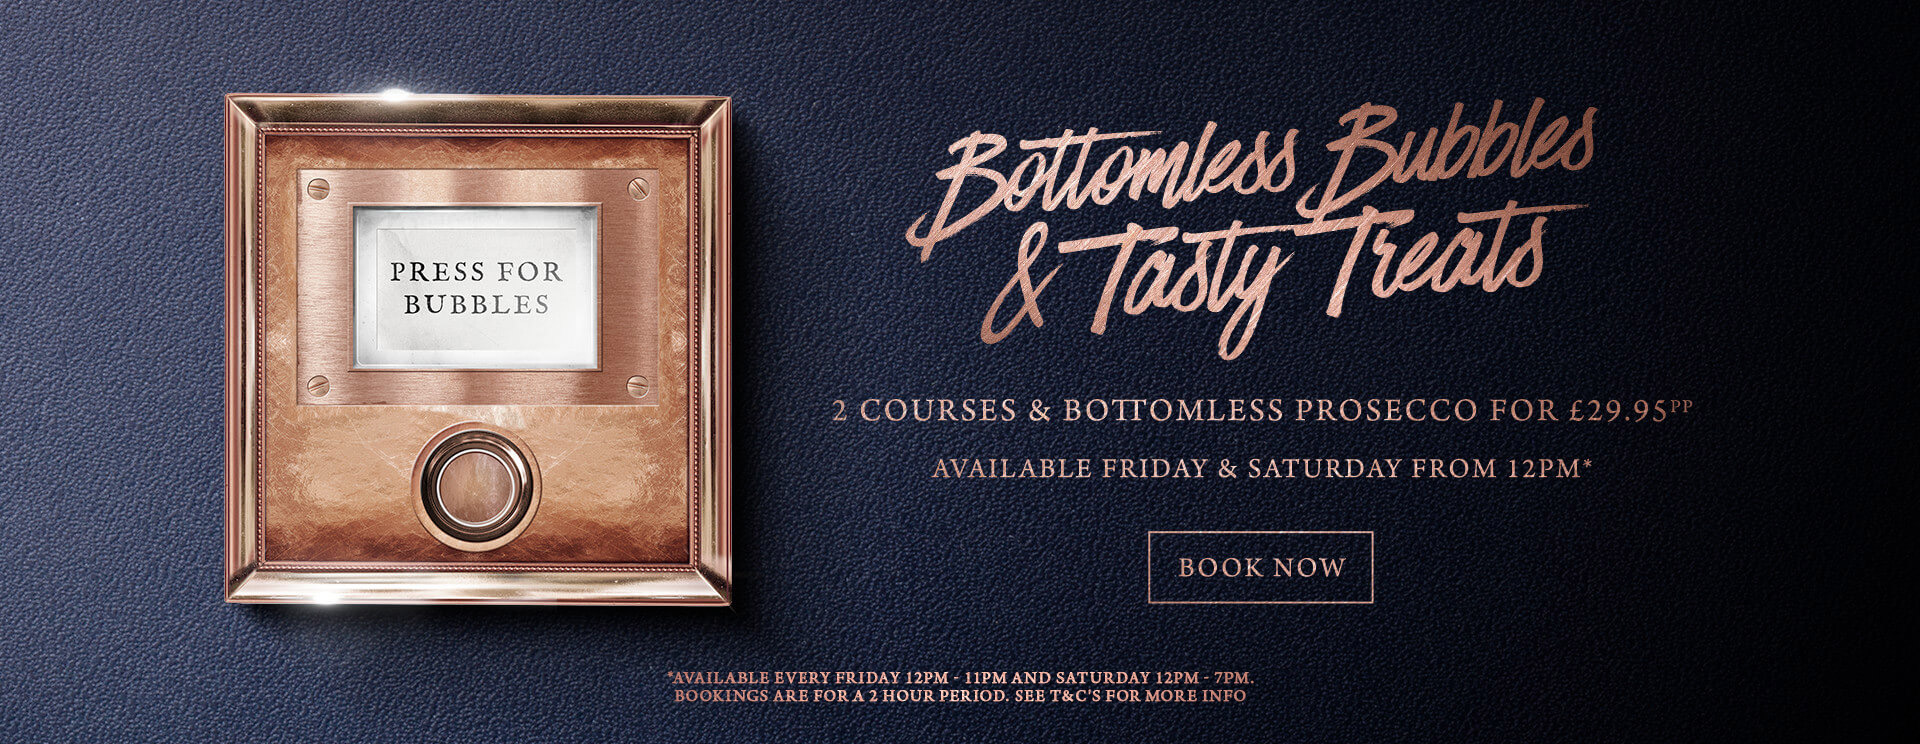 Bottomless Bubbles The Encore - Book now